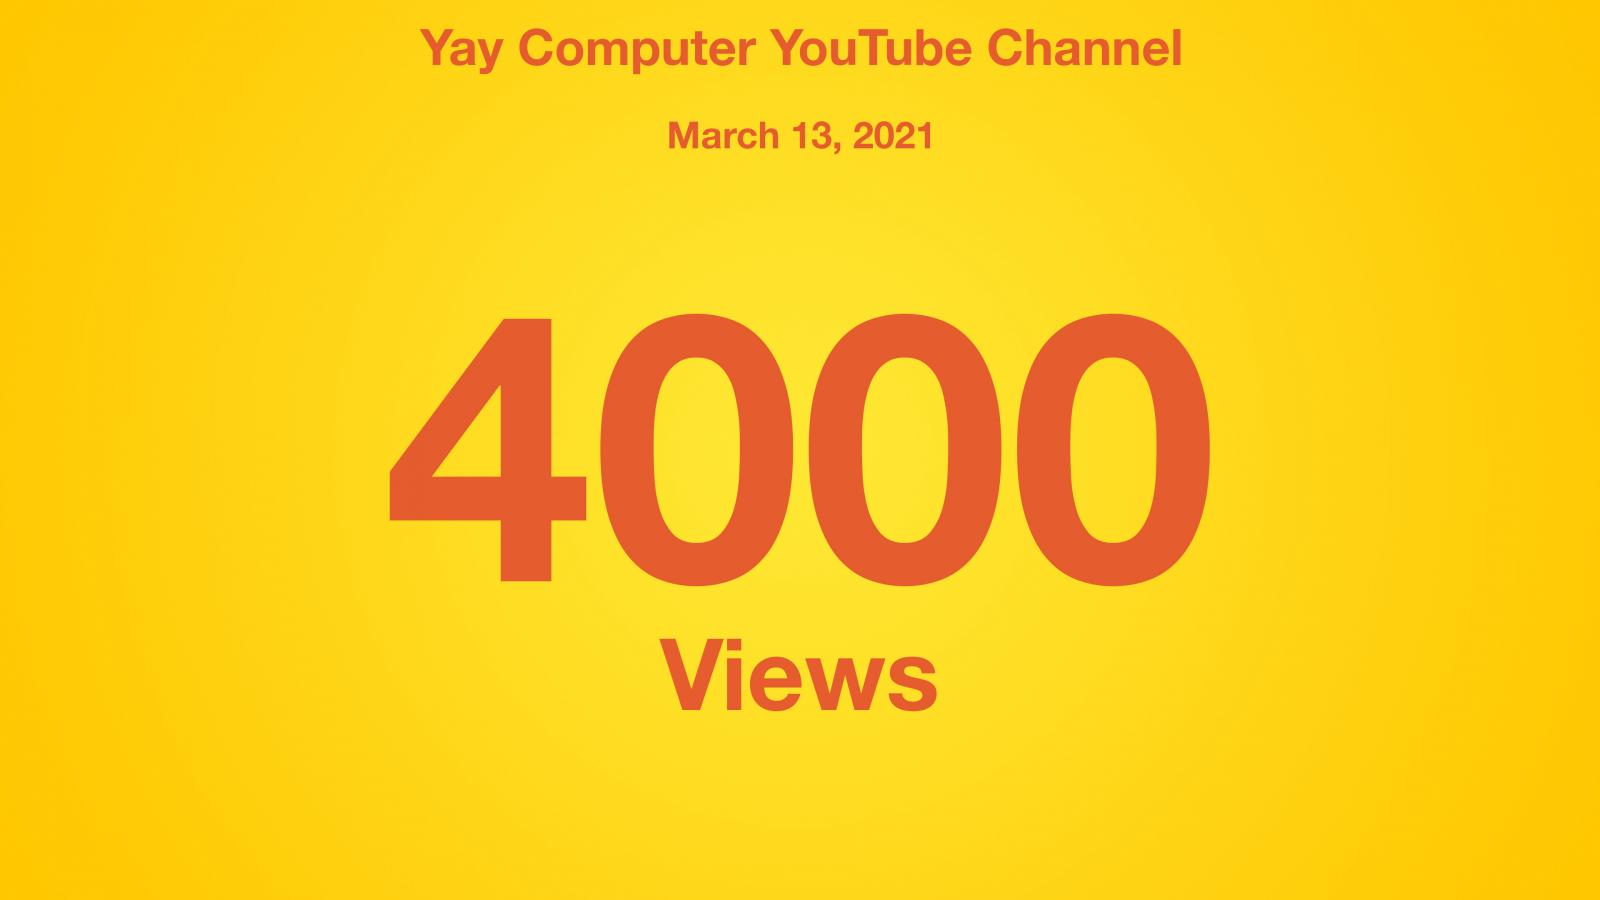 Yay Computer YouTube Channel, March 13 2021, 4000 Views